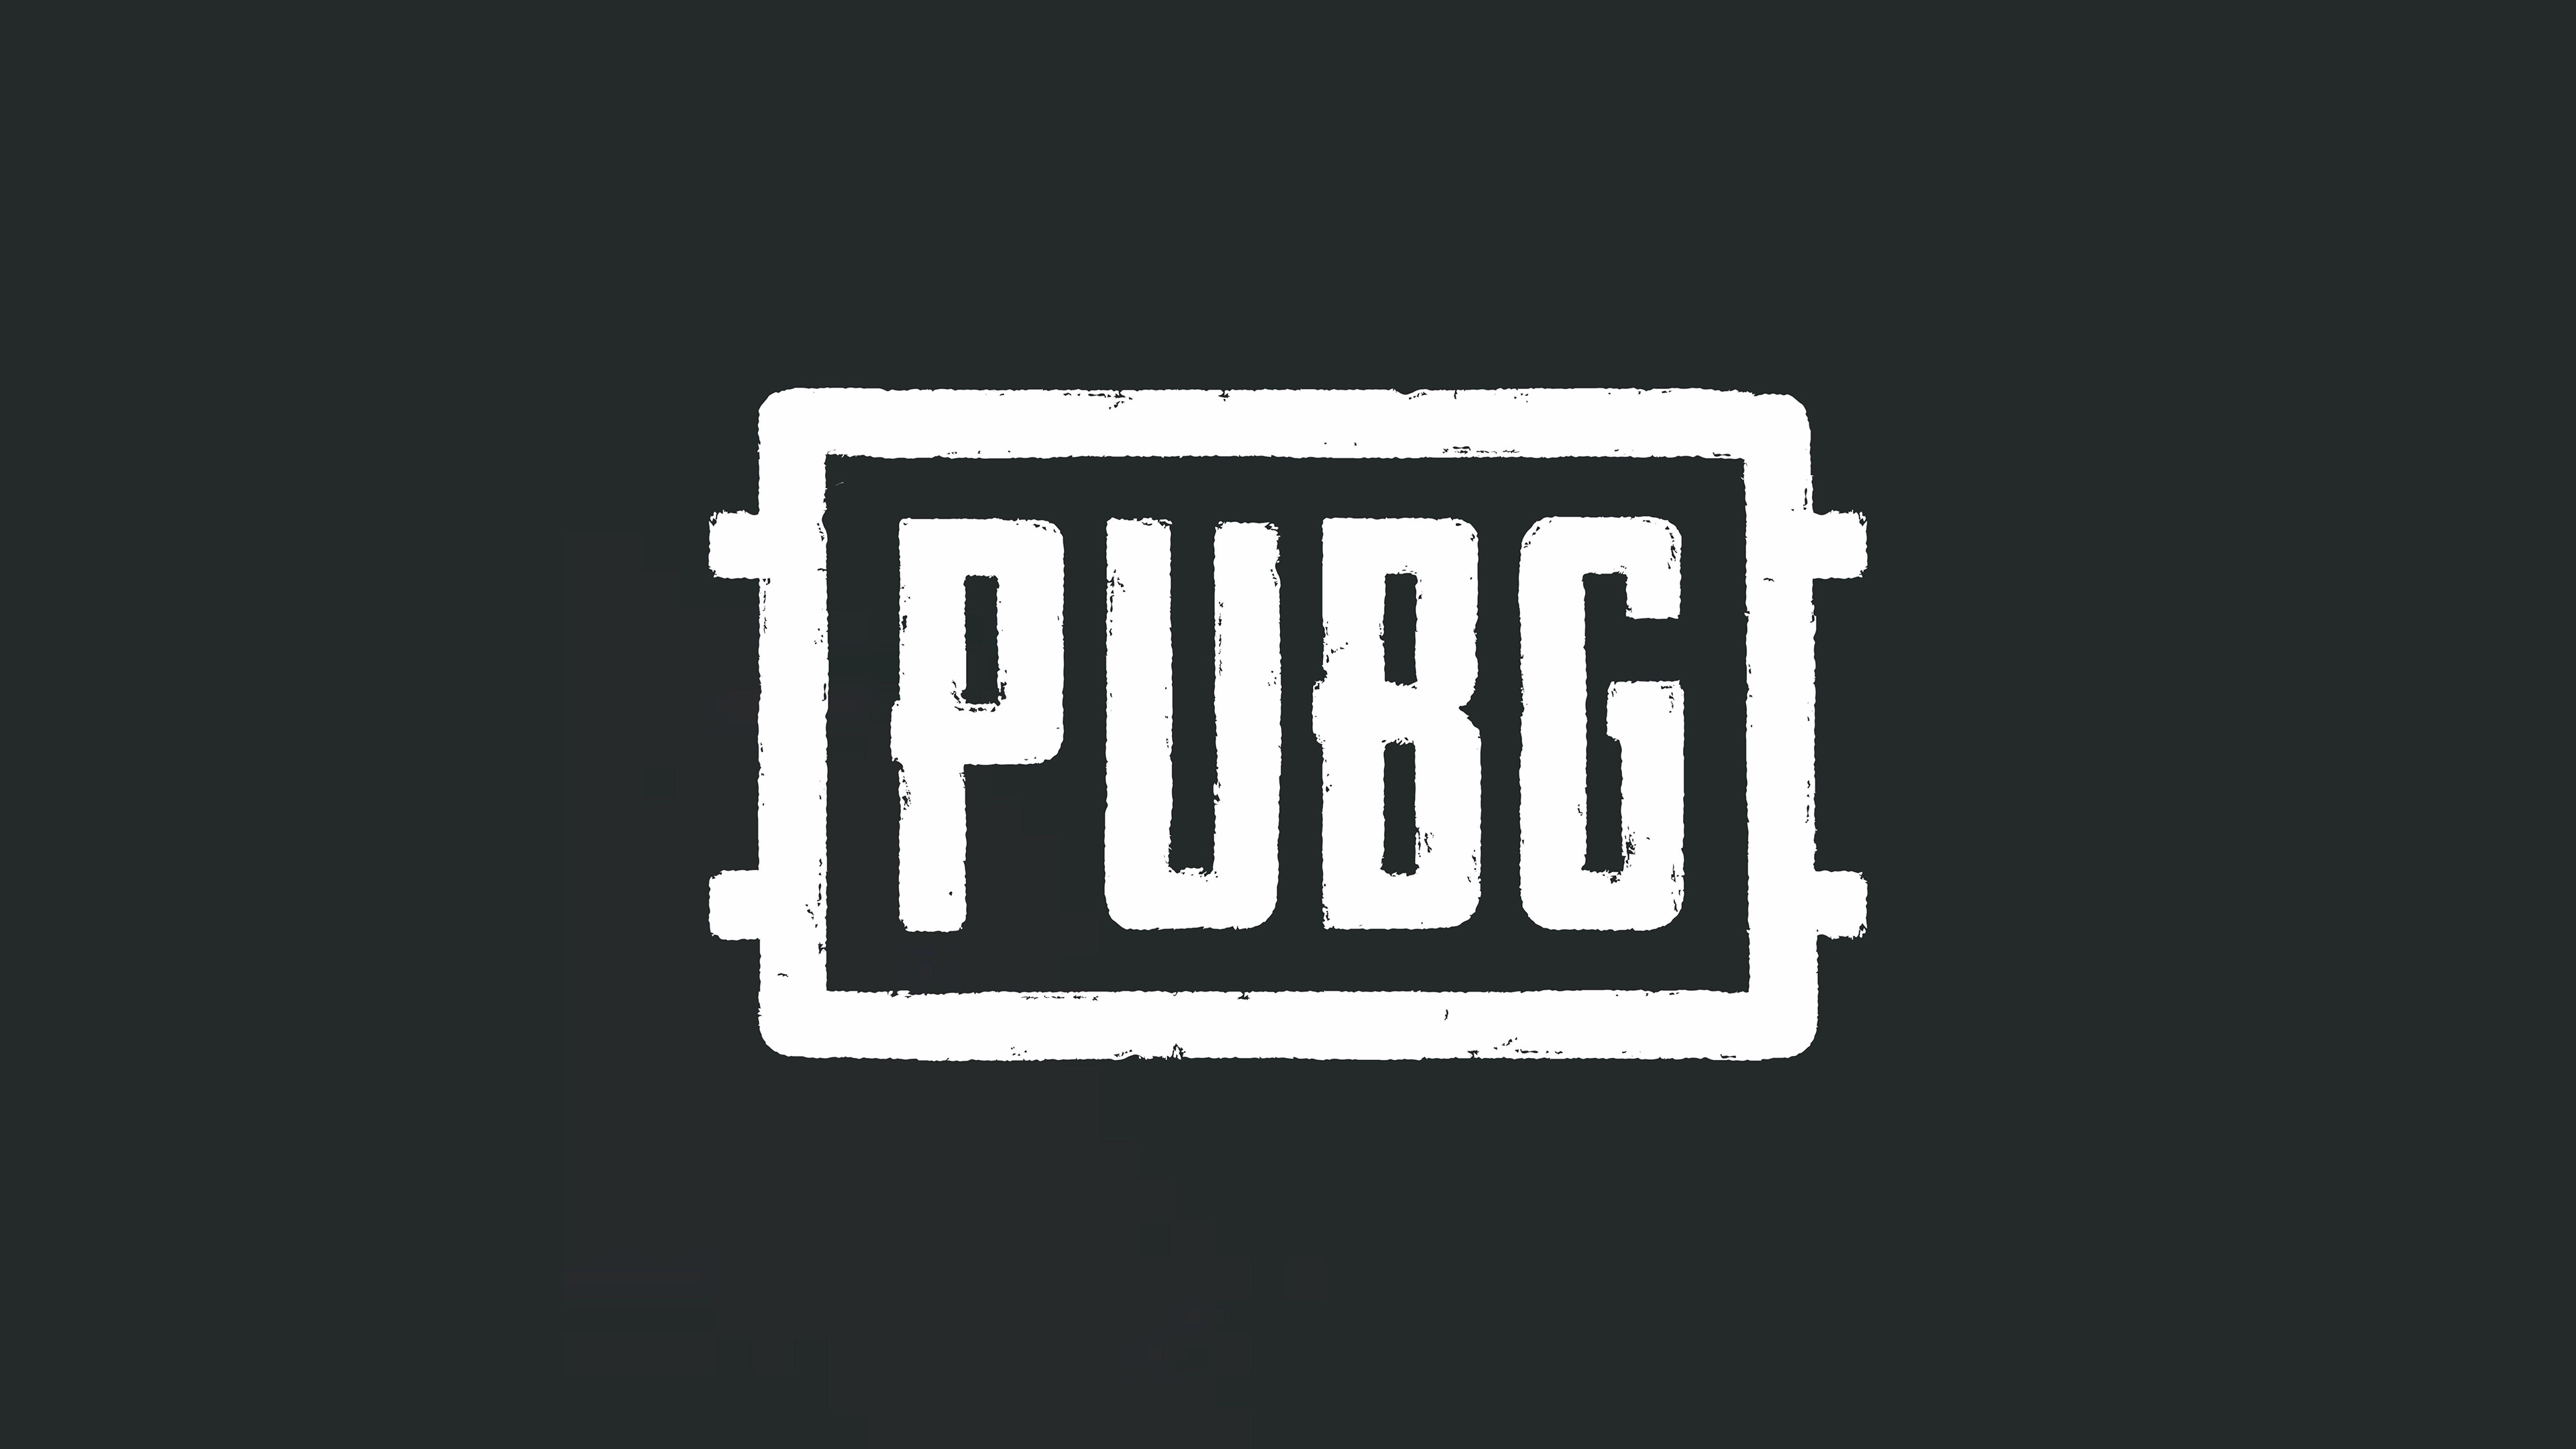 PUBG Game Logo 4k, HD Games, 4k Wallpapers, Images